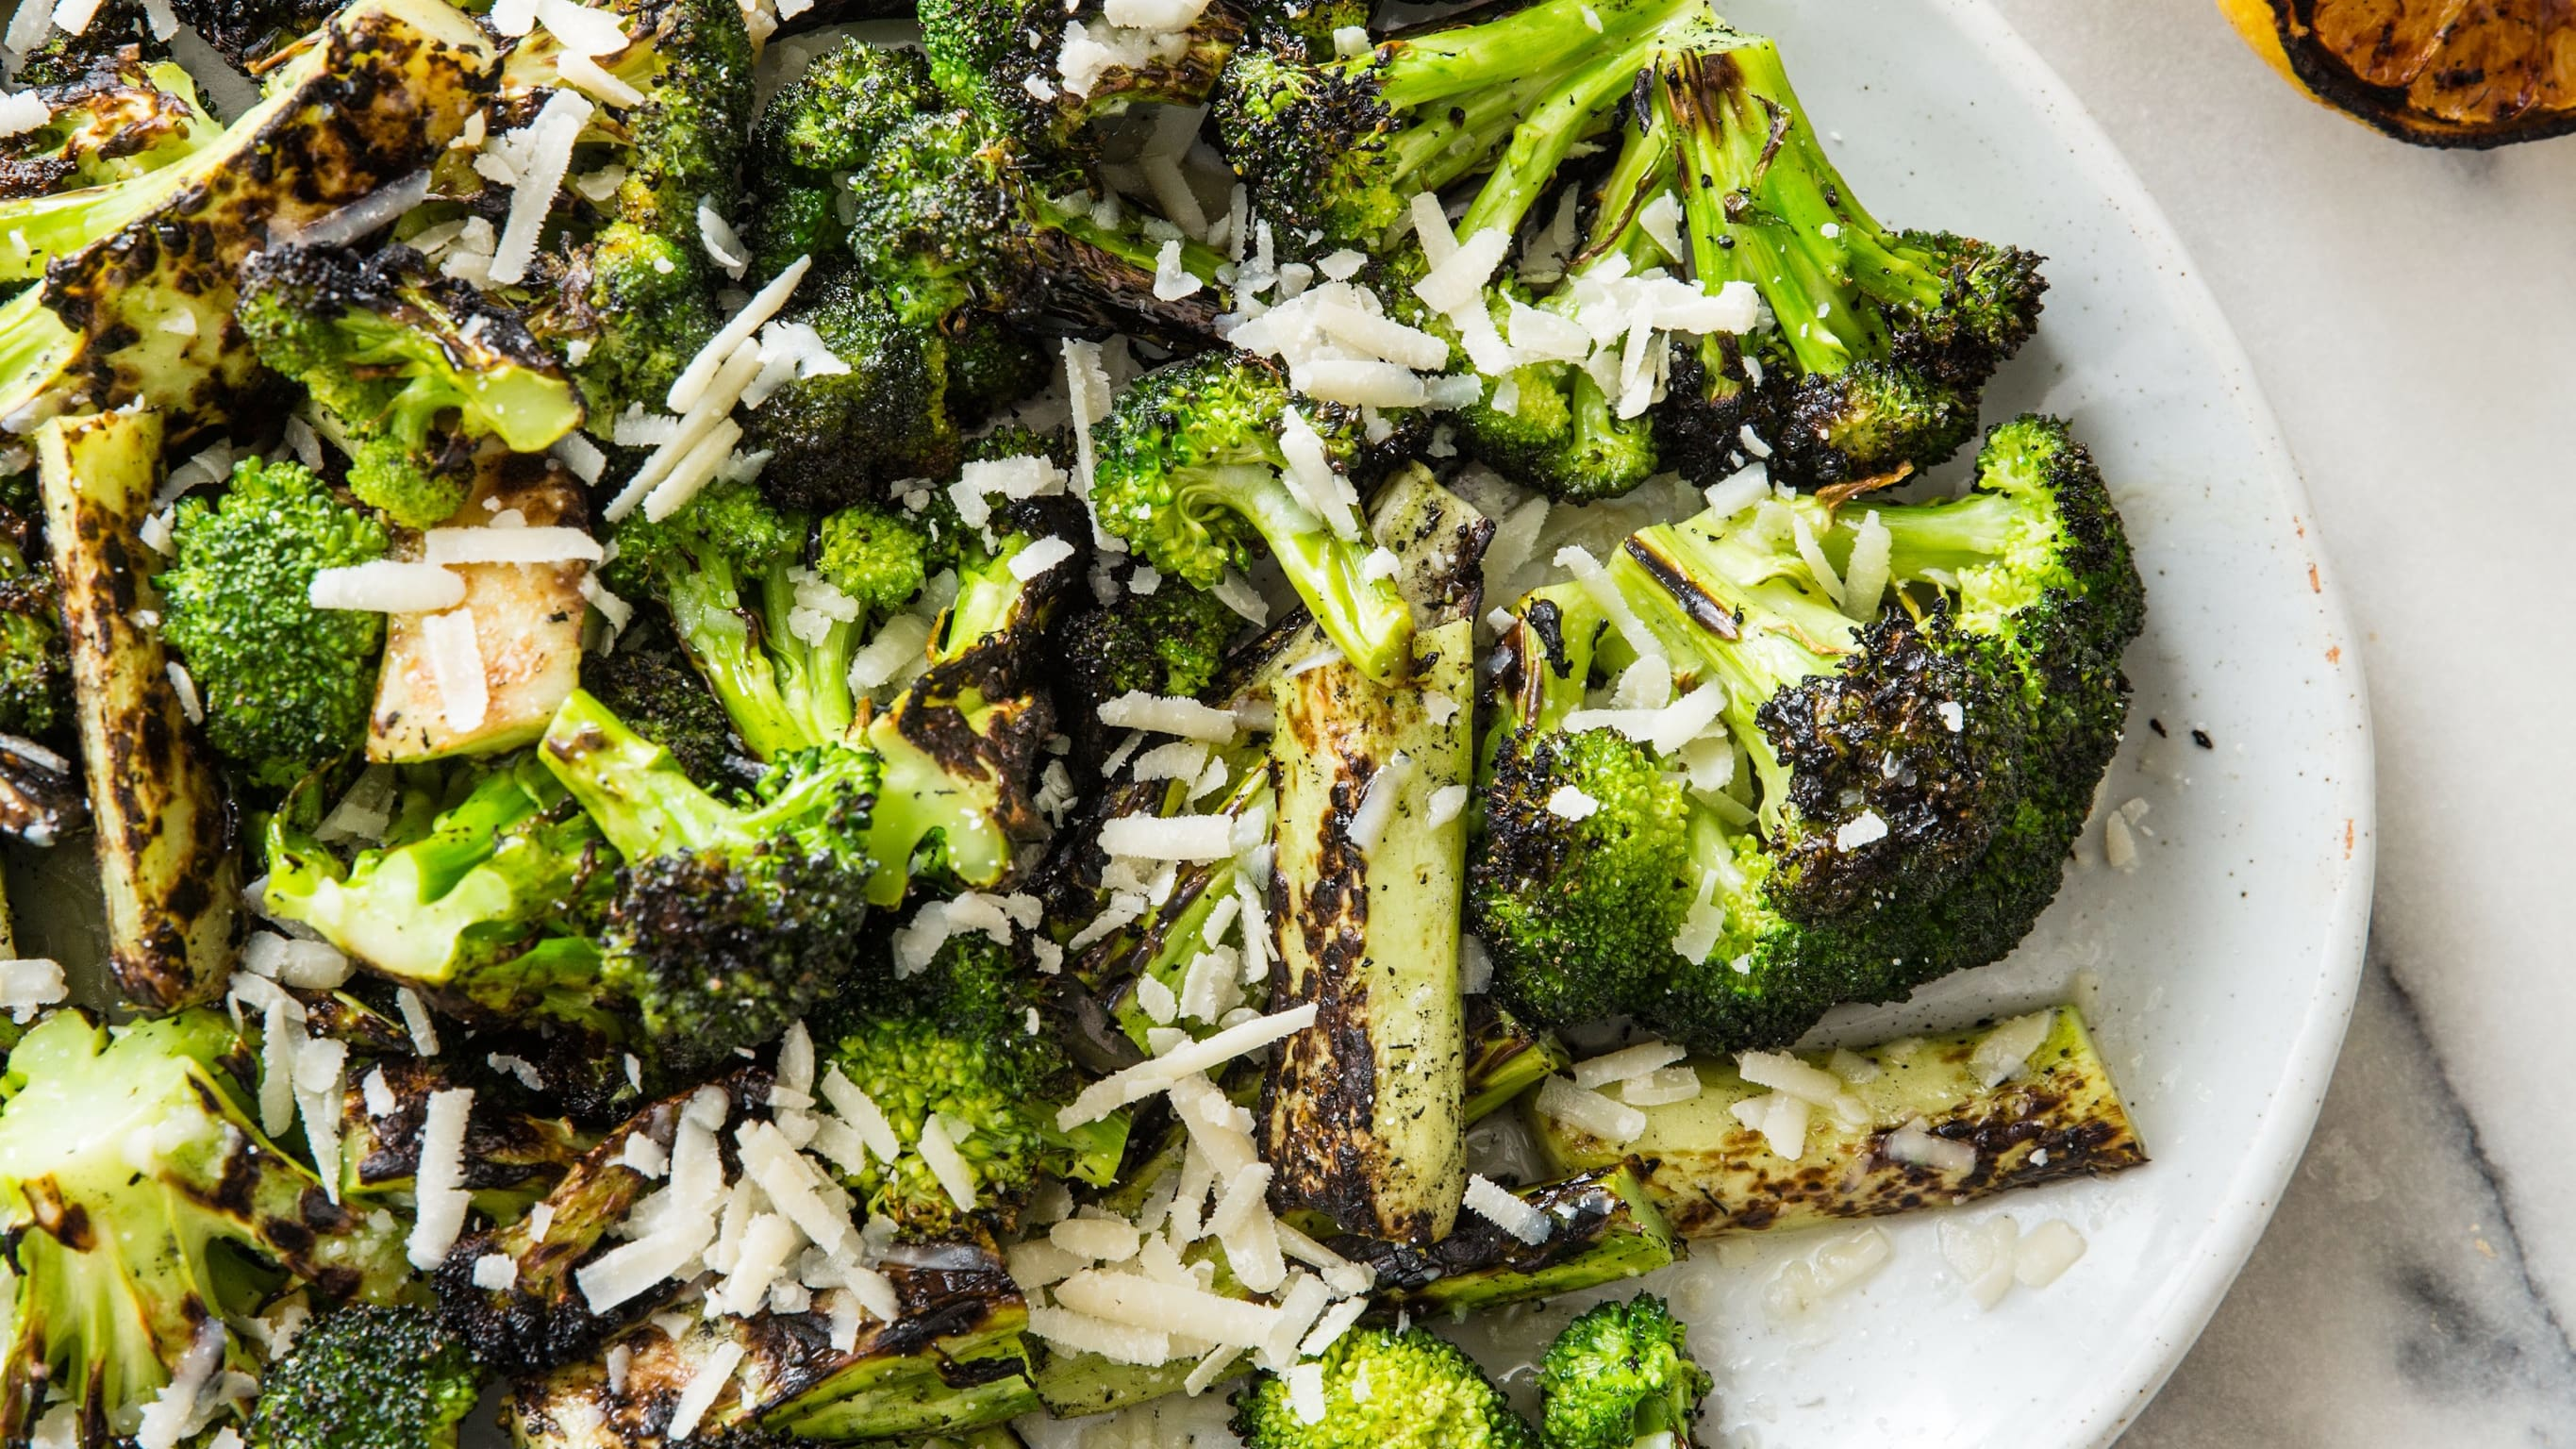 29673 sfs grilled broccoli with lemon and parmesan 8